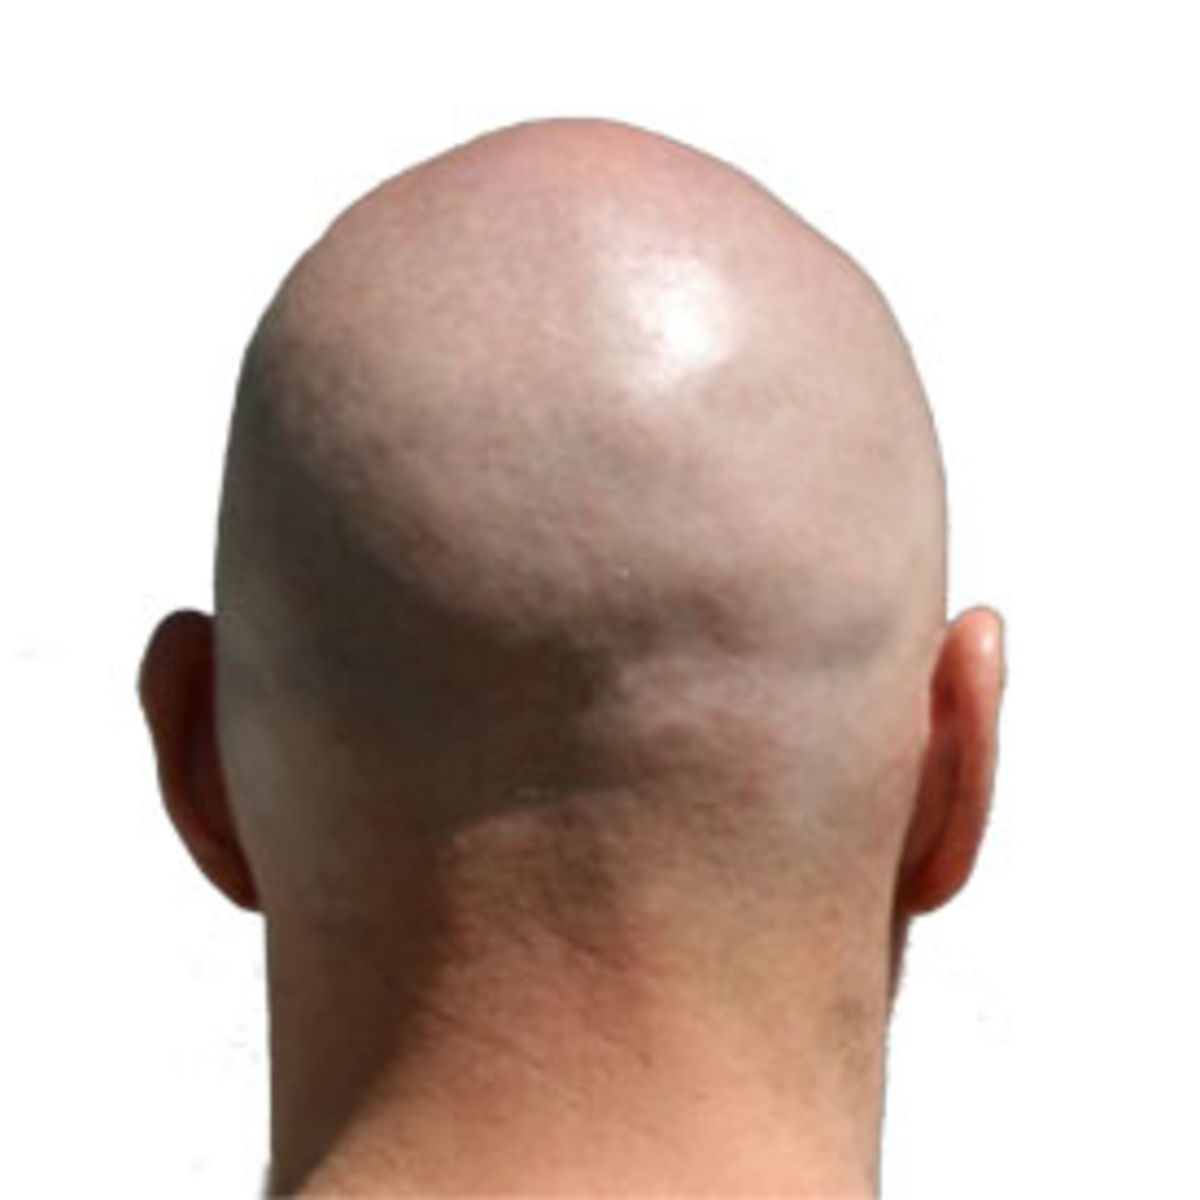 7 Reasons Being A Bald Guy Rocks